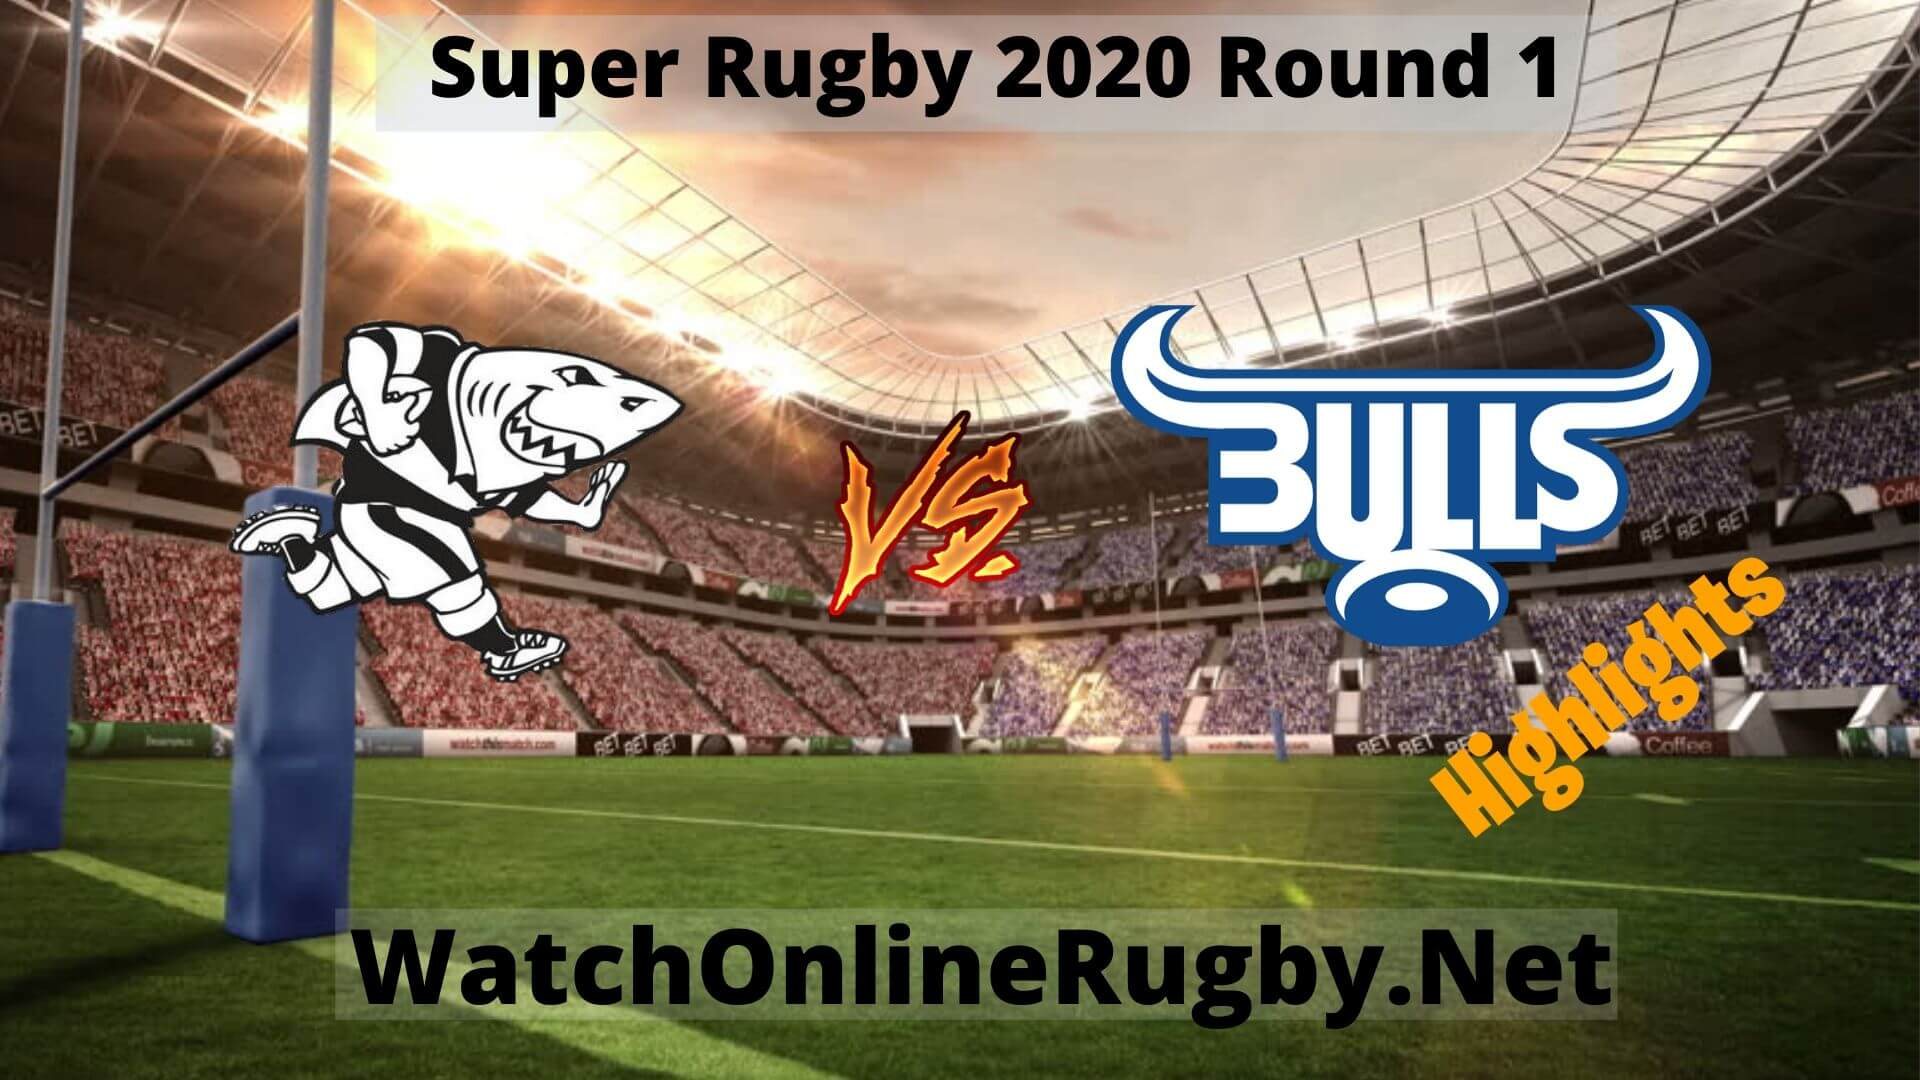 Sharks vs Bulls Highlights Super Rugby 2020 Round 1